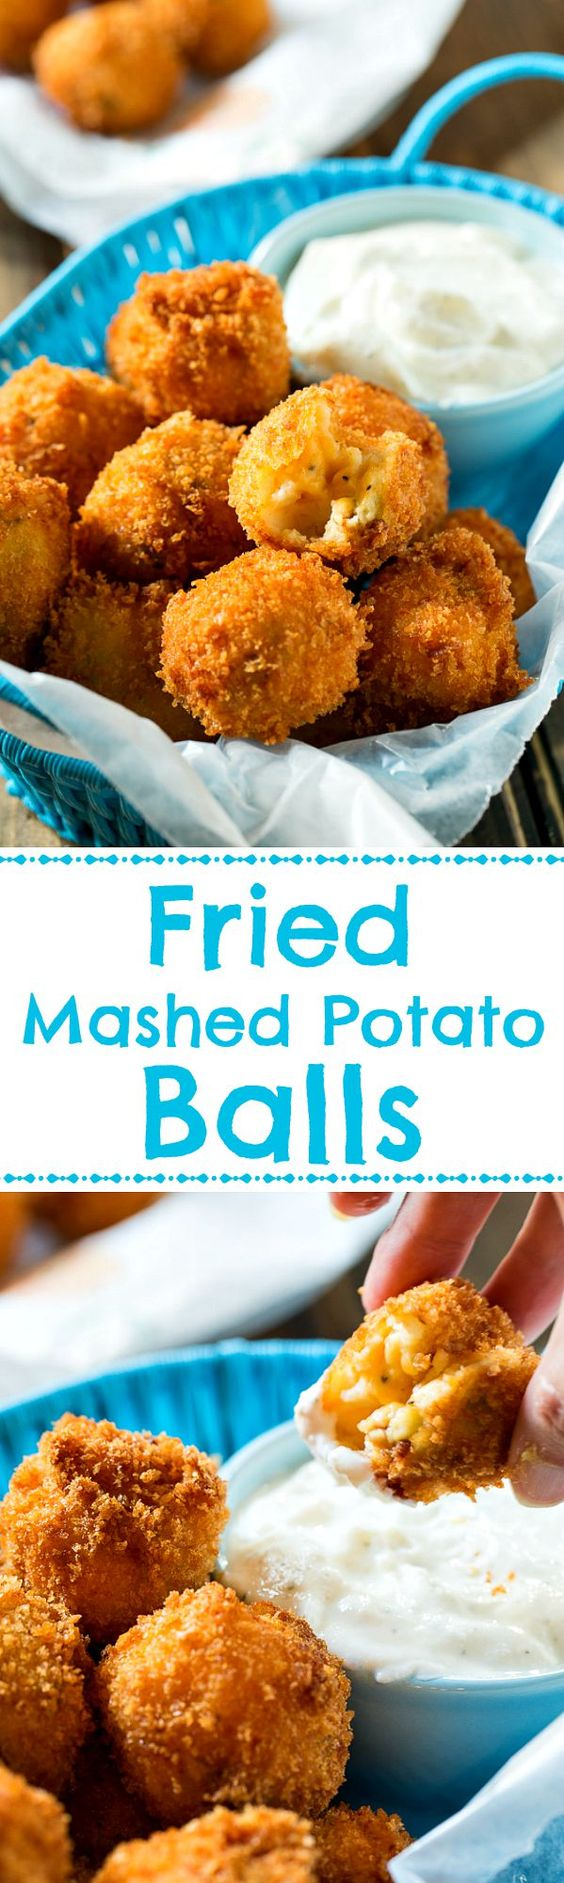 Fried Mashed Potato Balls - great for using up Thanksgiving leftovers!